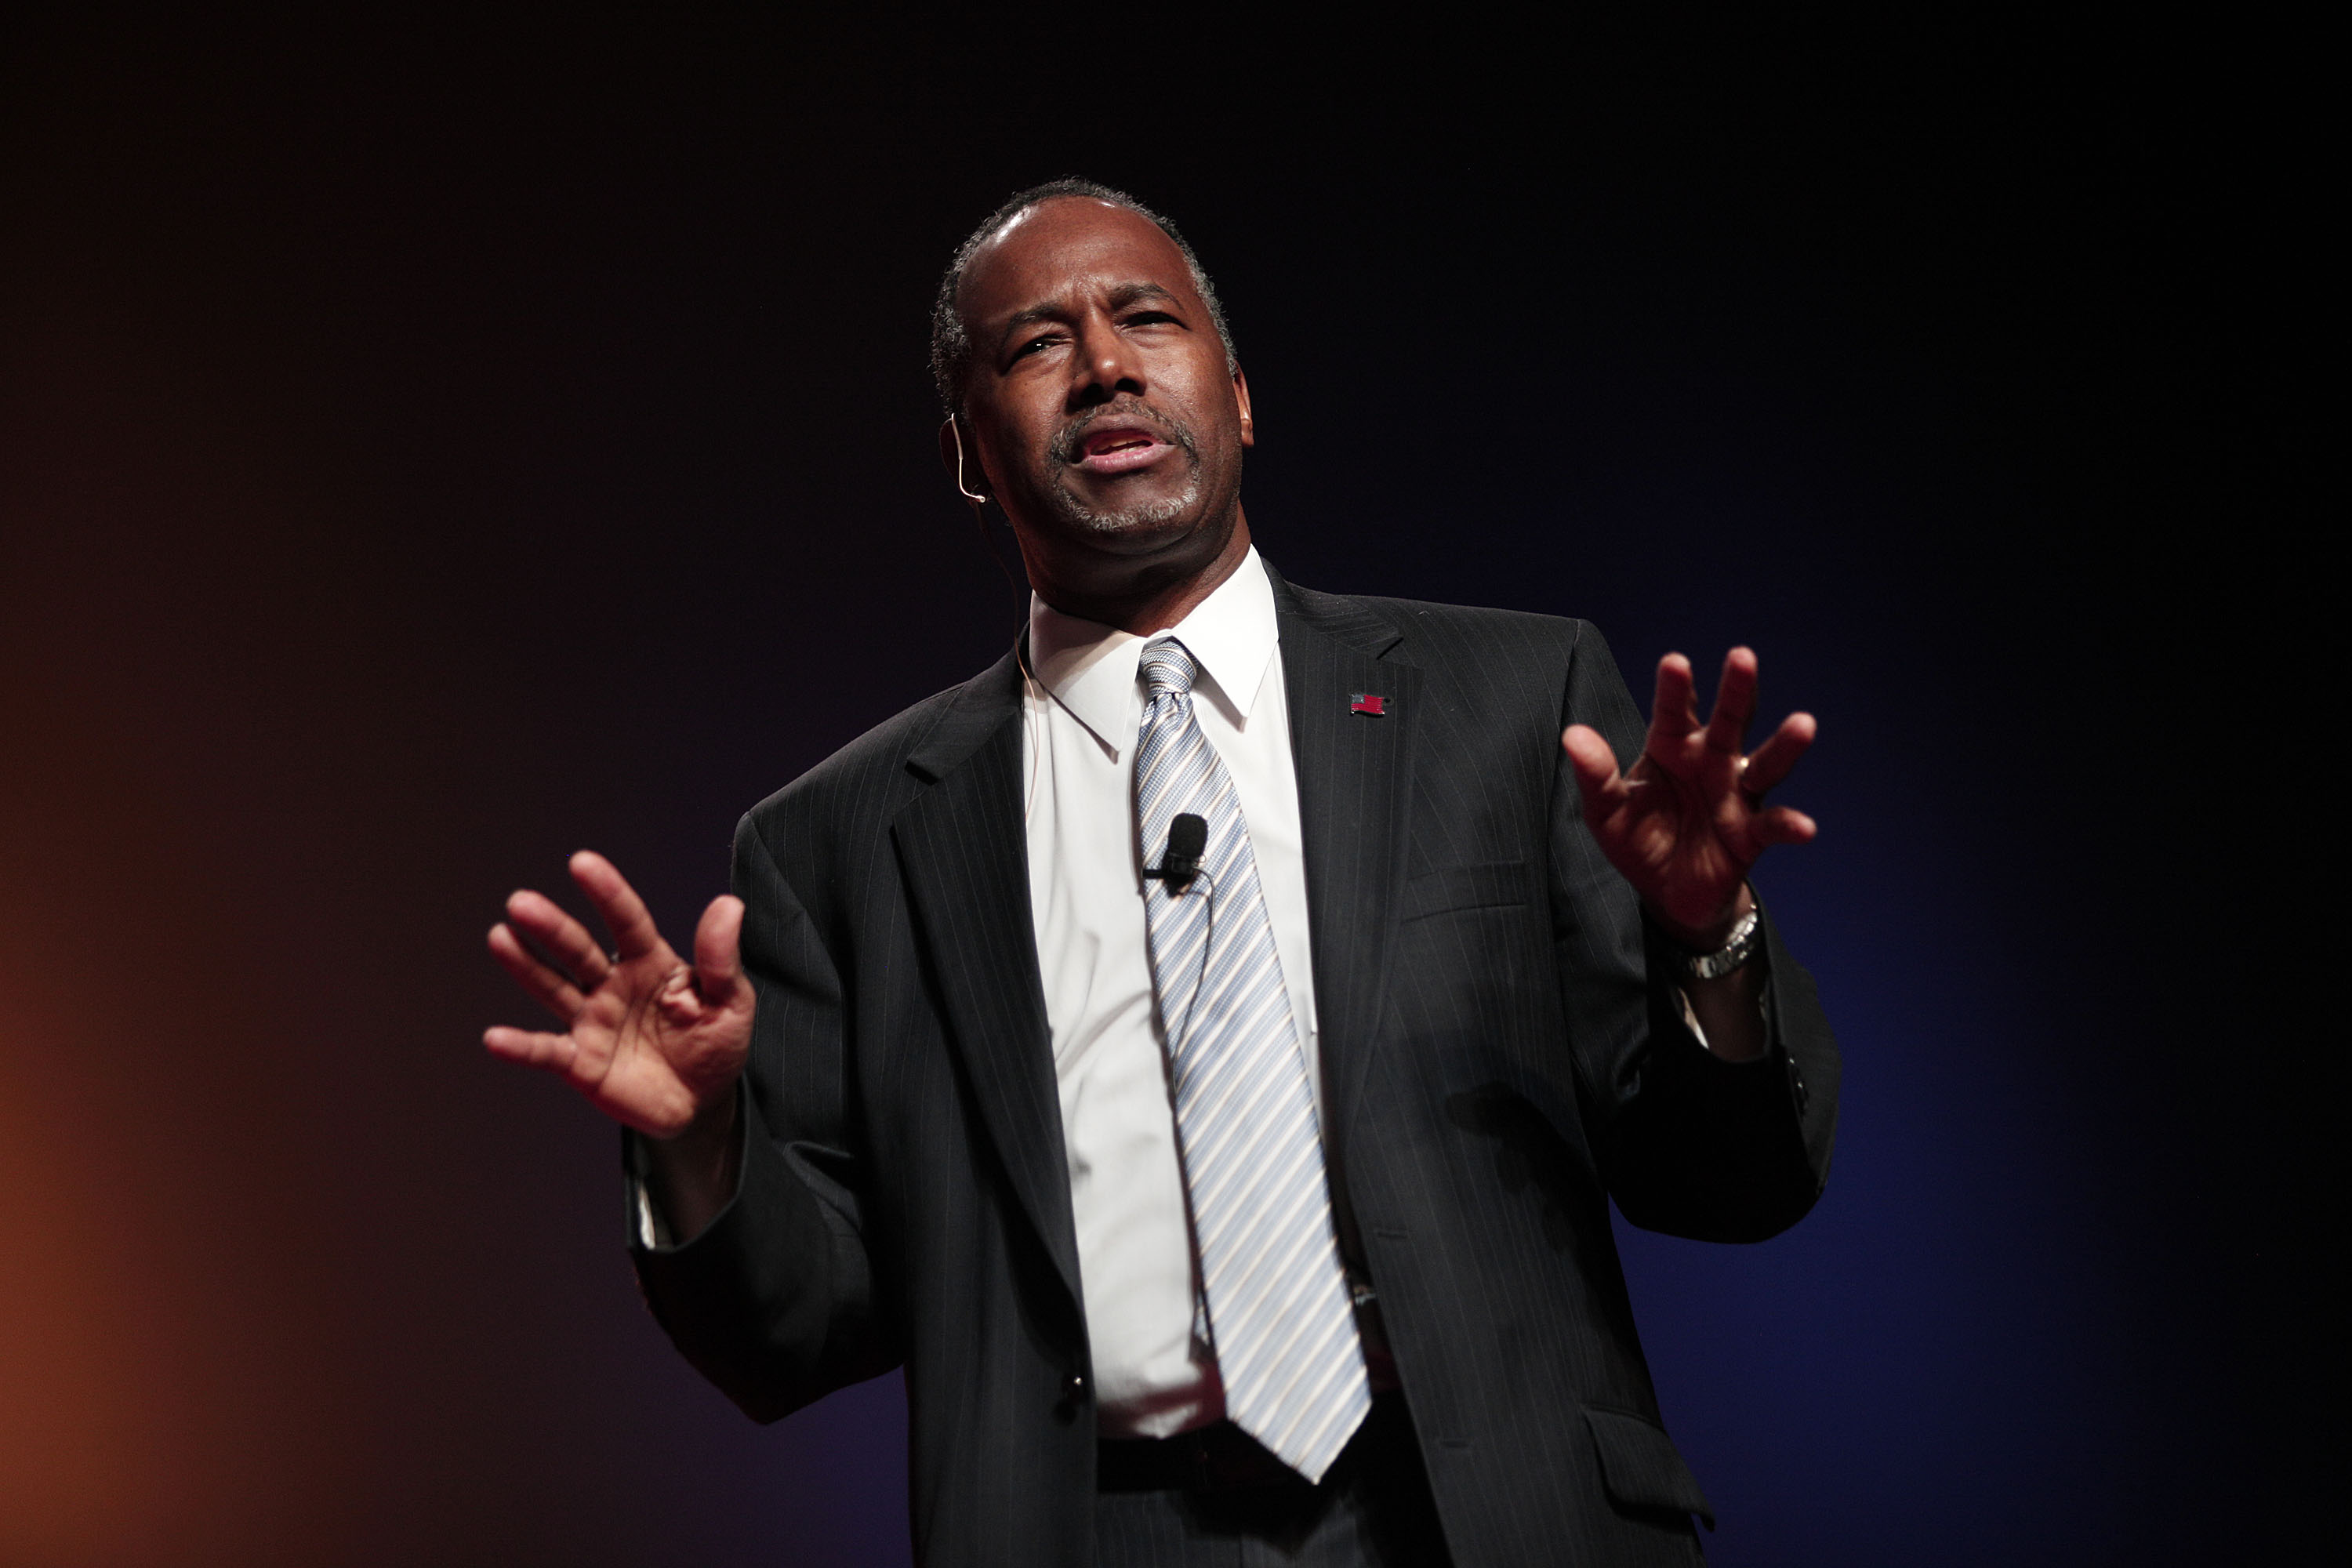 Ben Carson Makes Announcement About Seeking Republican Presidential Nomination